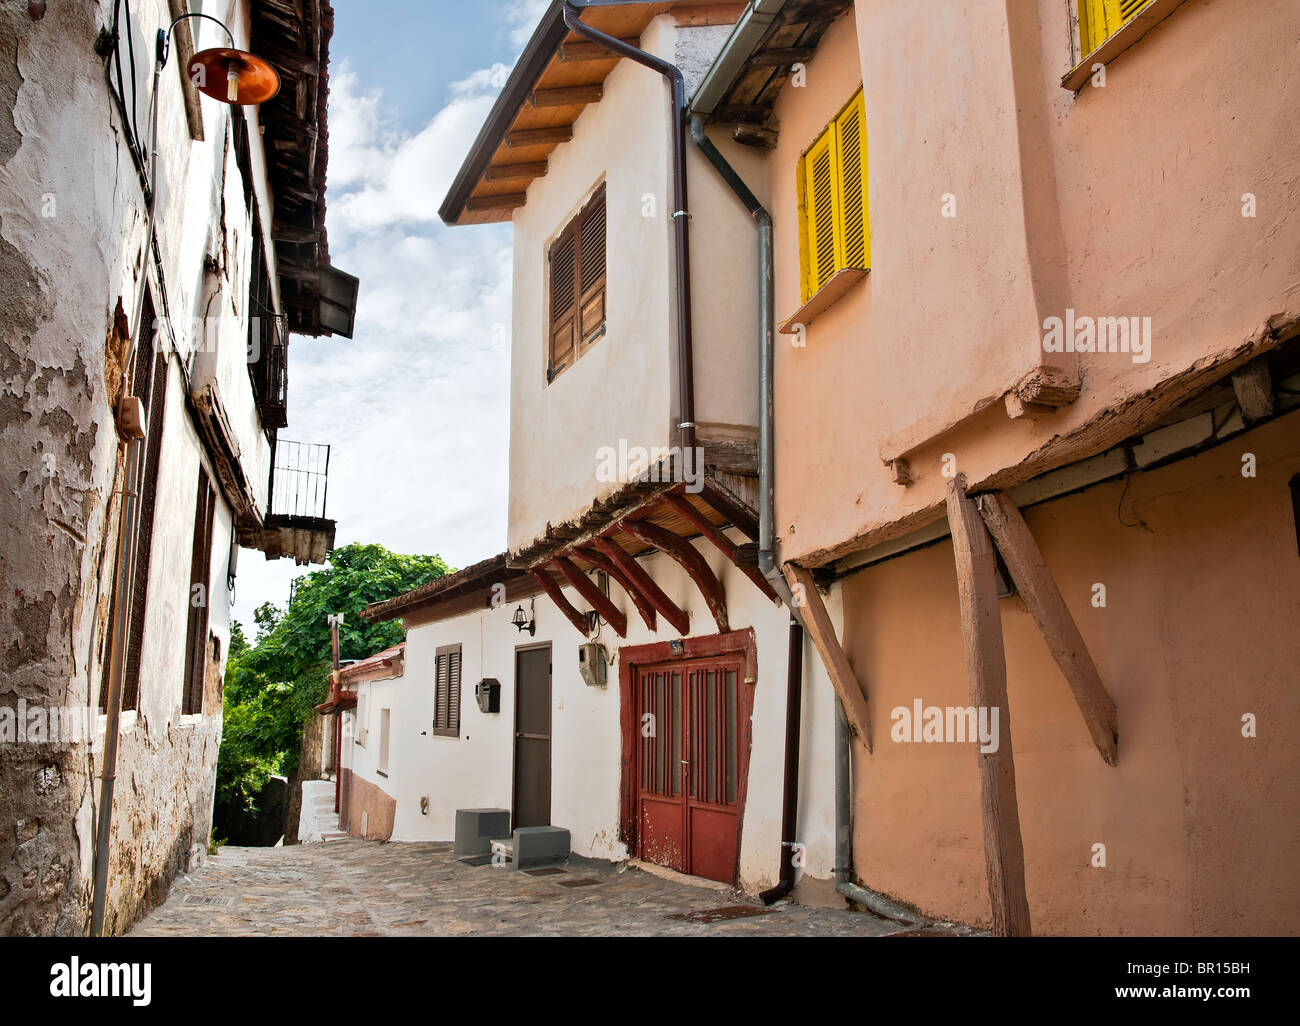 Old Ottoman period houses in the Varossi quarter of Edessa, Macedonia, Northern Greece. - Stock Image